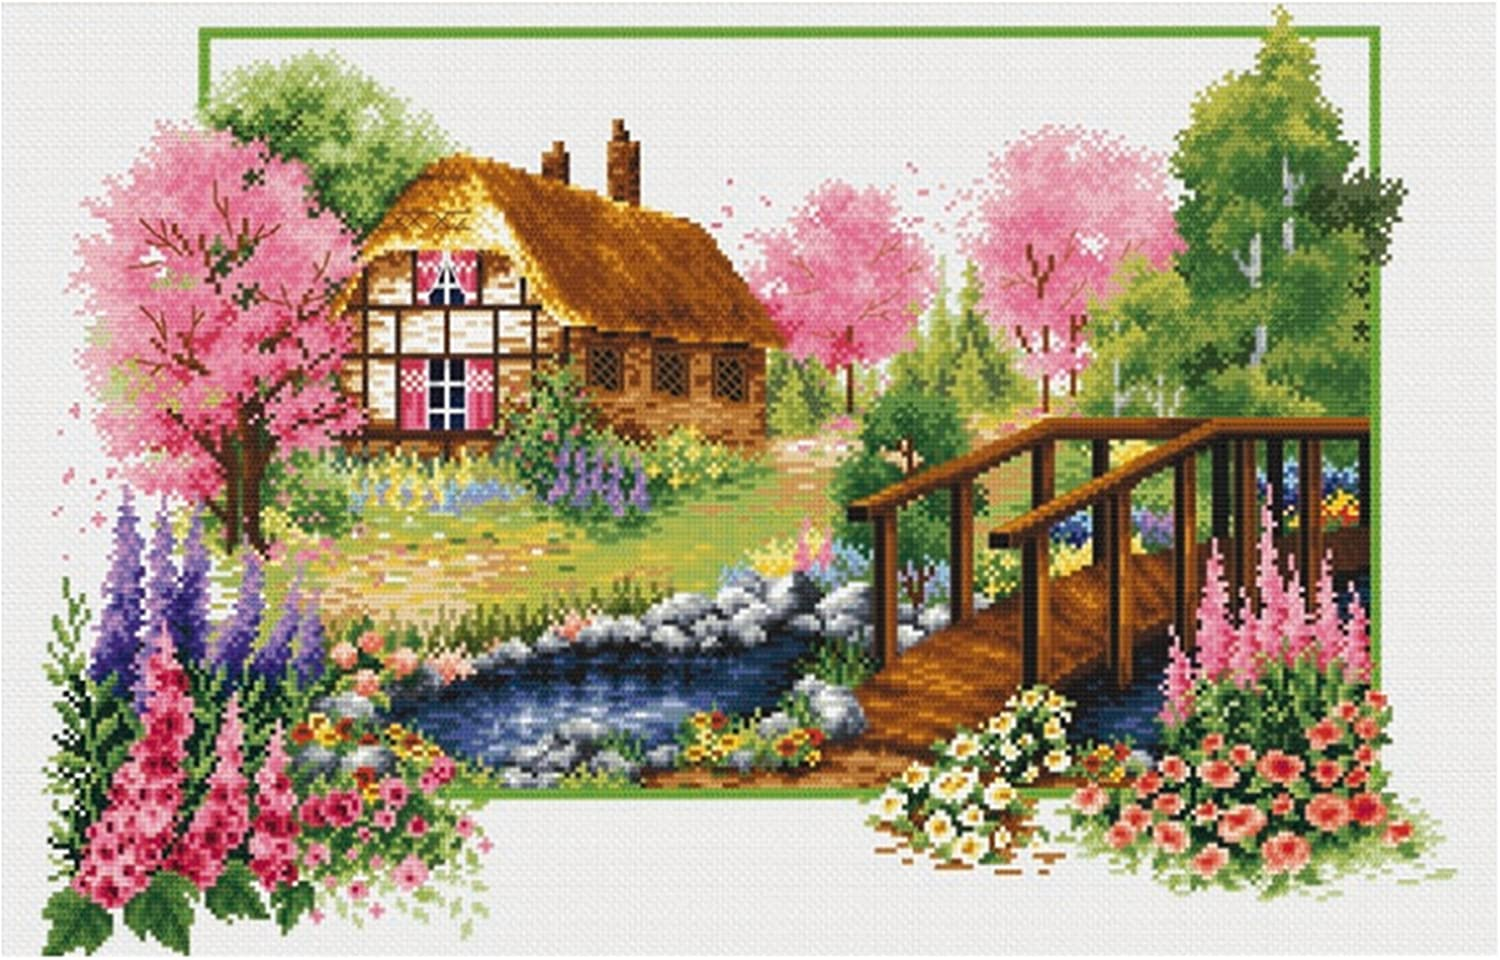 TINMI ATRS DIY Stamped Cross Stitch Landscape Kits Thread Needlework Embroidery Printed Pattern 11CT Home Decoration Four Seasons Autumn Story, 27x19